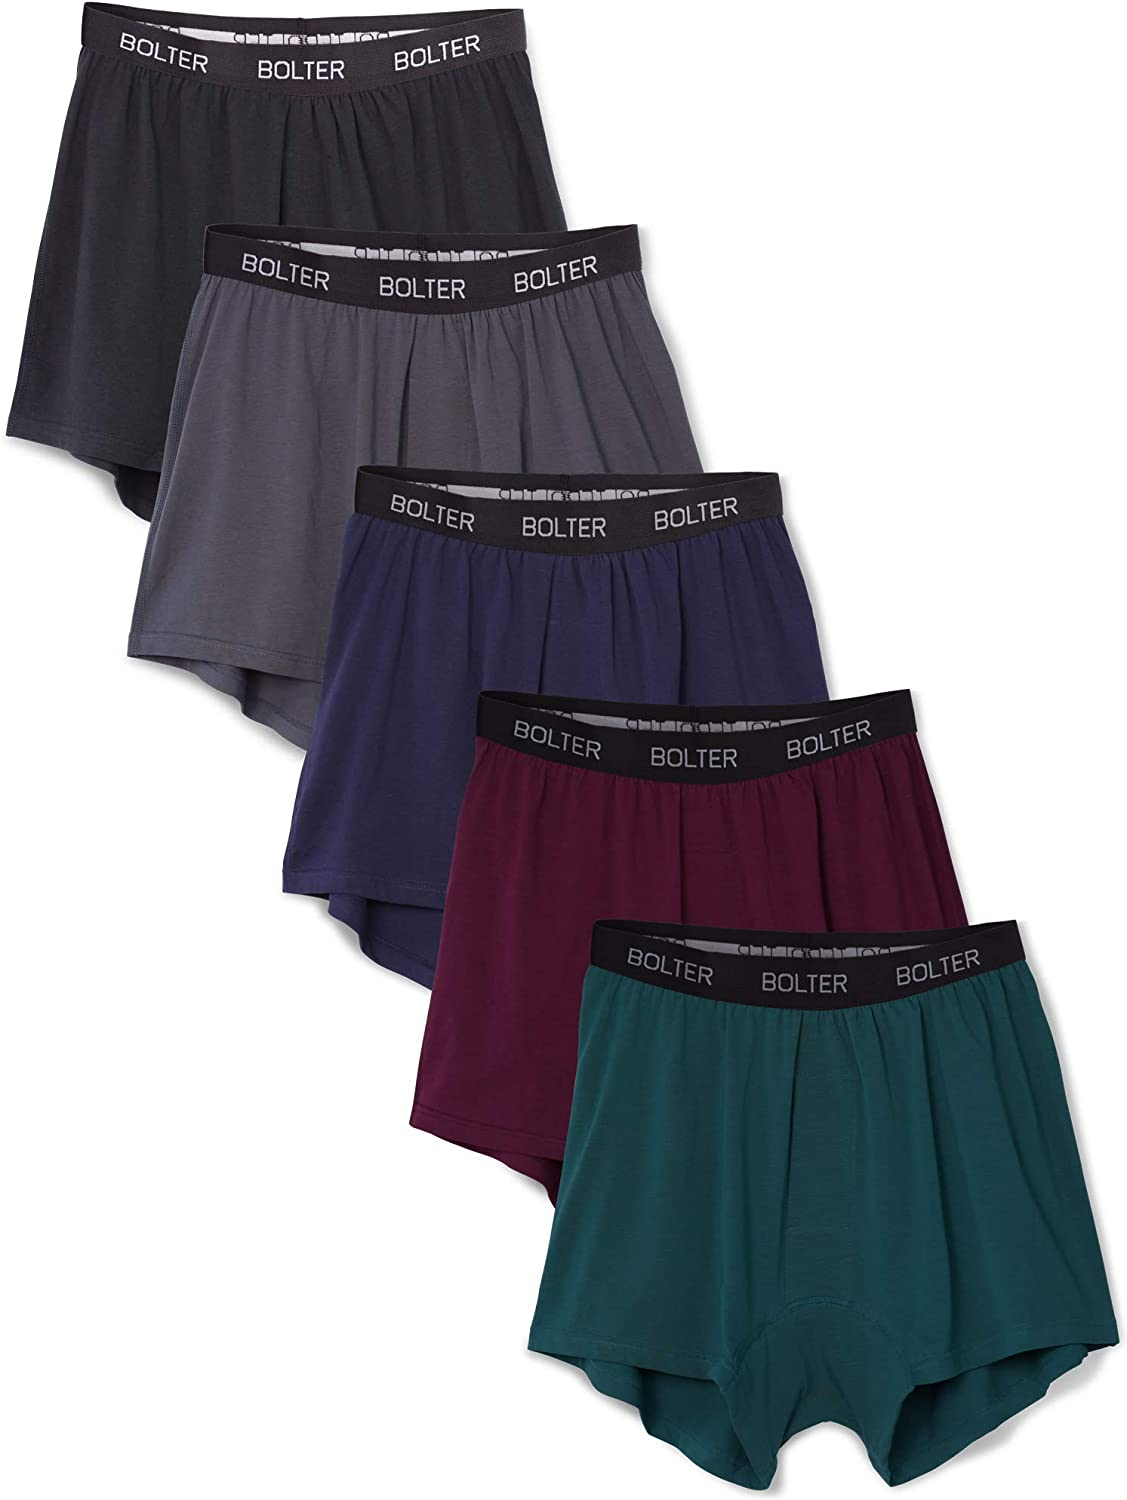 Bolter Men/'s 5-Pack Cotton Stretch Boxers Shorts